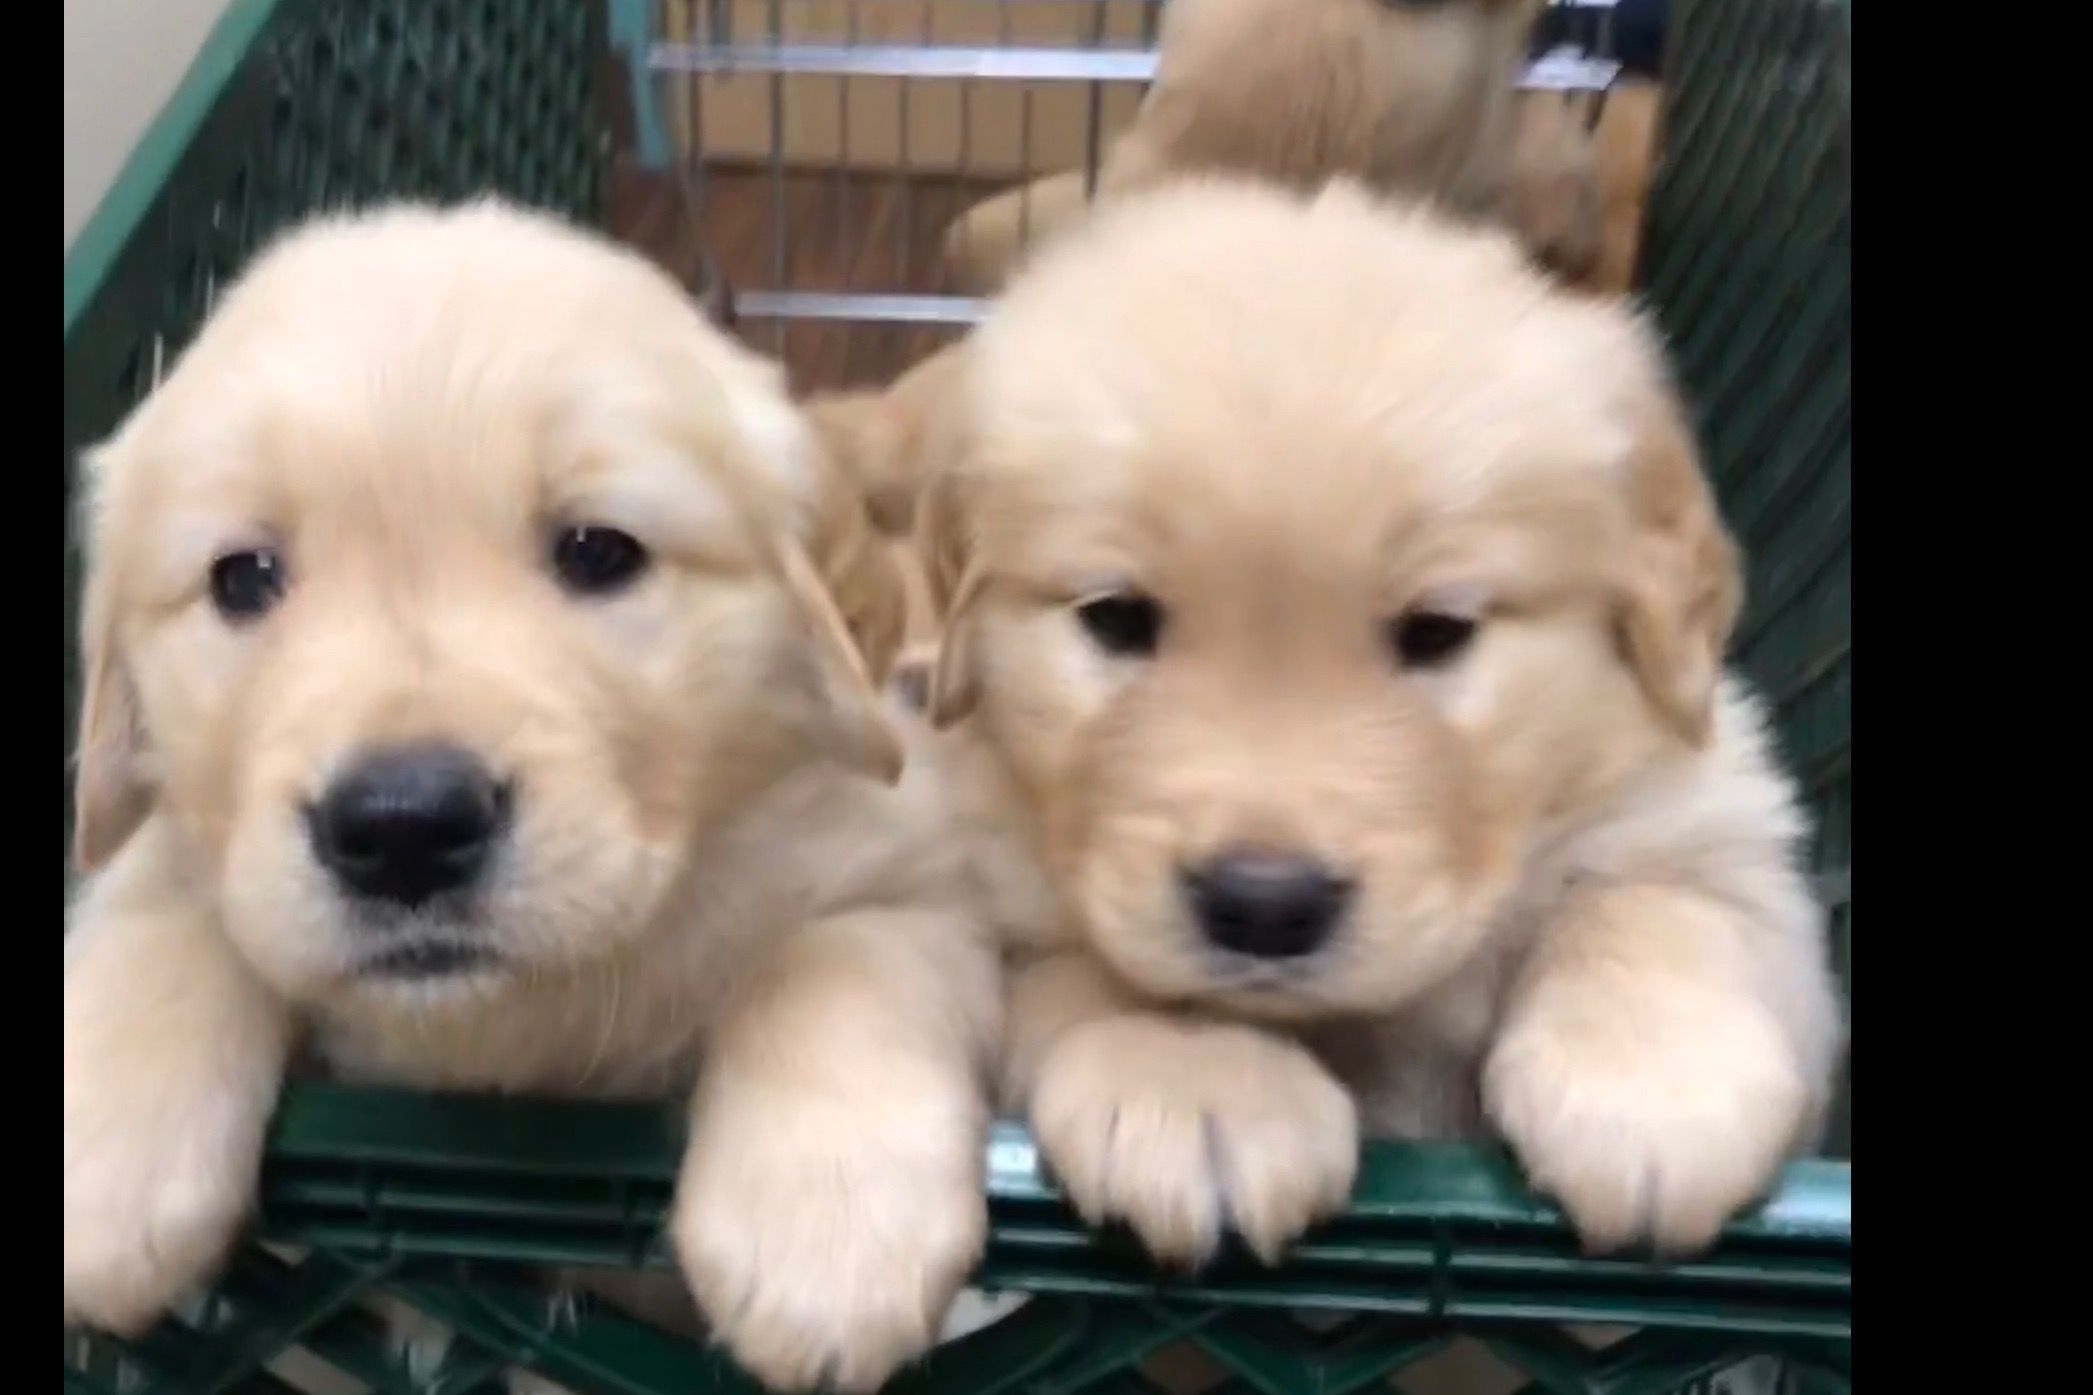 God S Golden Gifts Has Golden Retriever Puppies For Sale In New